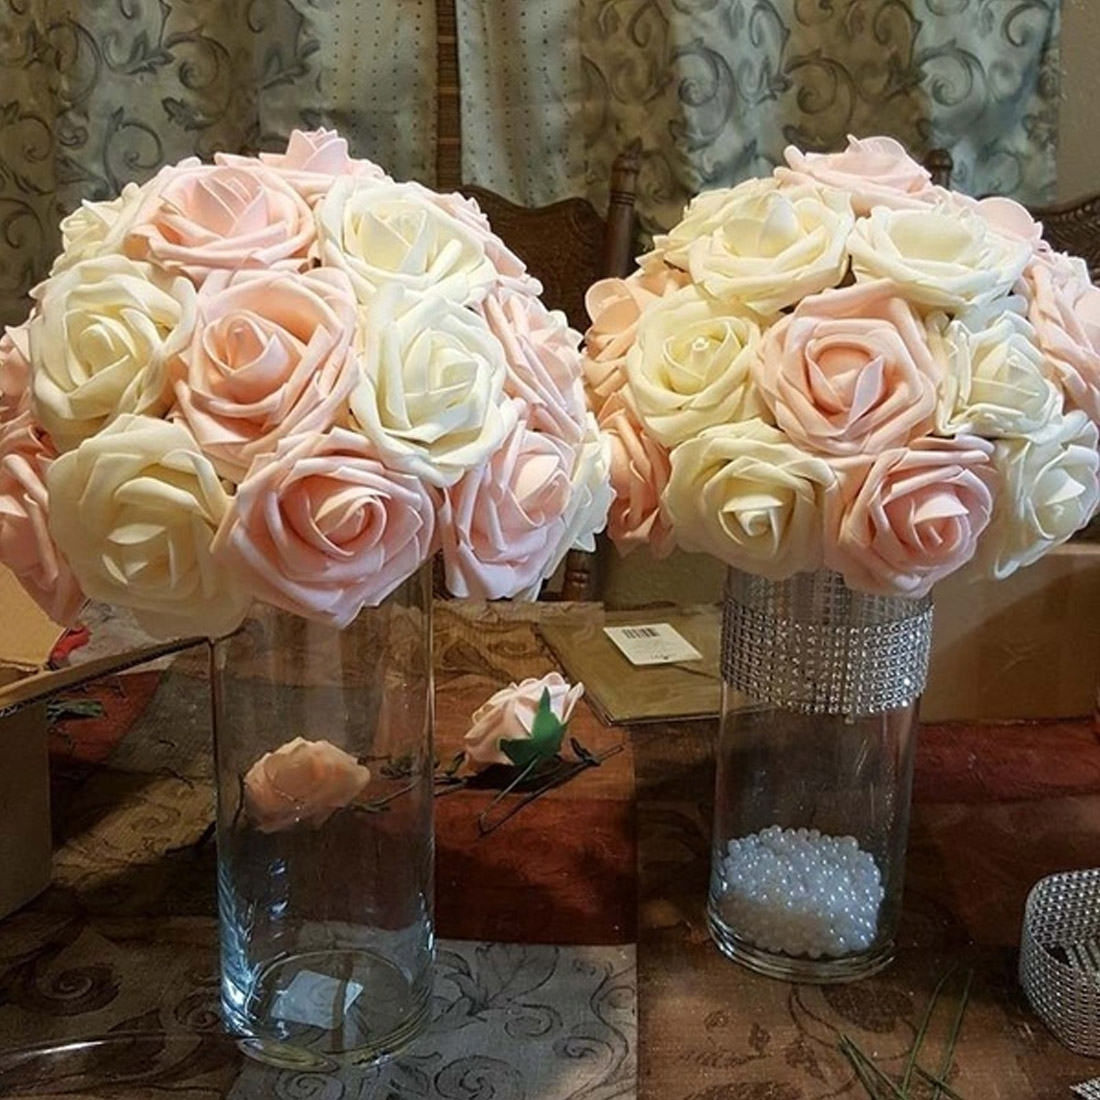 Foam Rose 10 Heads 6CM  Artificial Flowers PE Flowers Bride Bouquet Home Wedding Decor Pretty Charming DIY Supplies